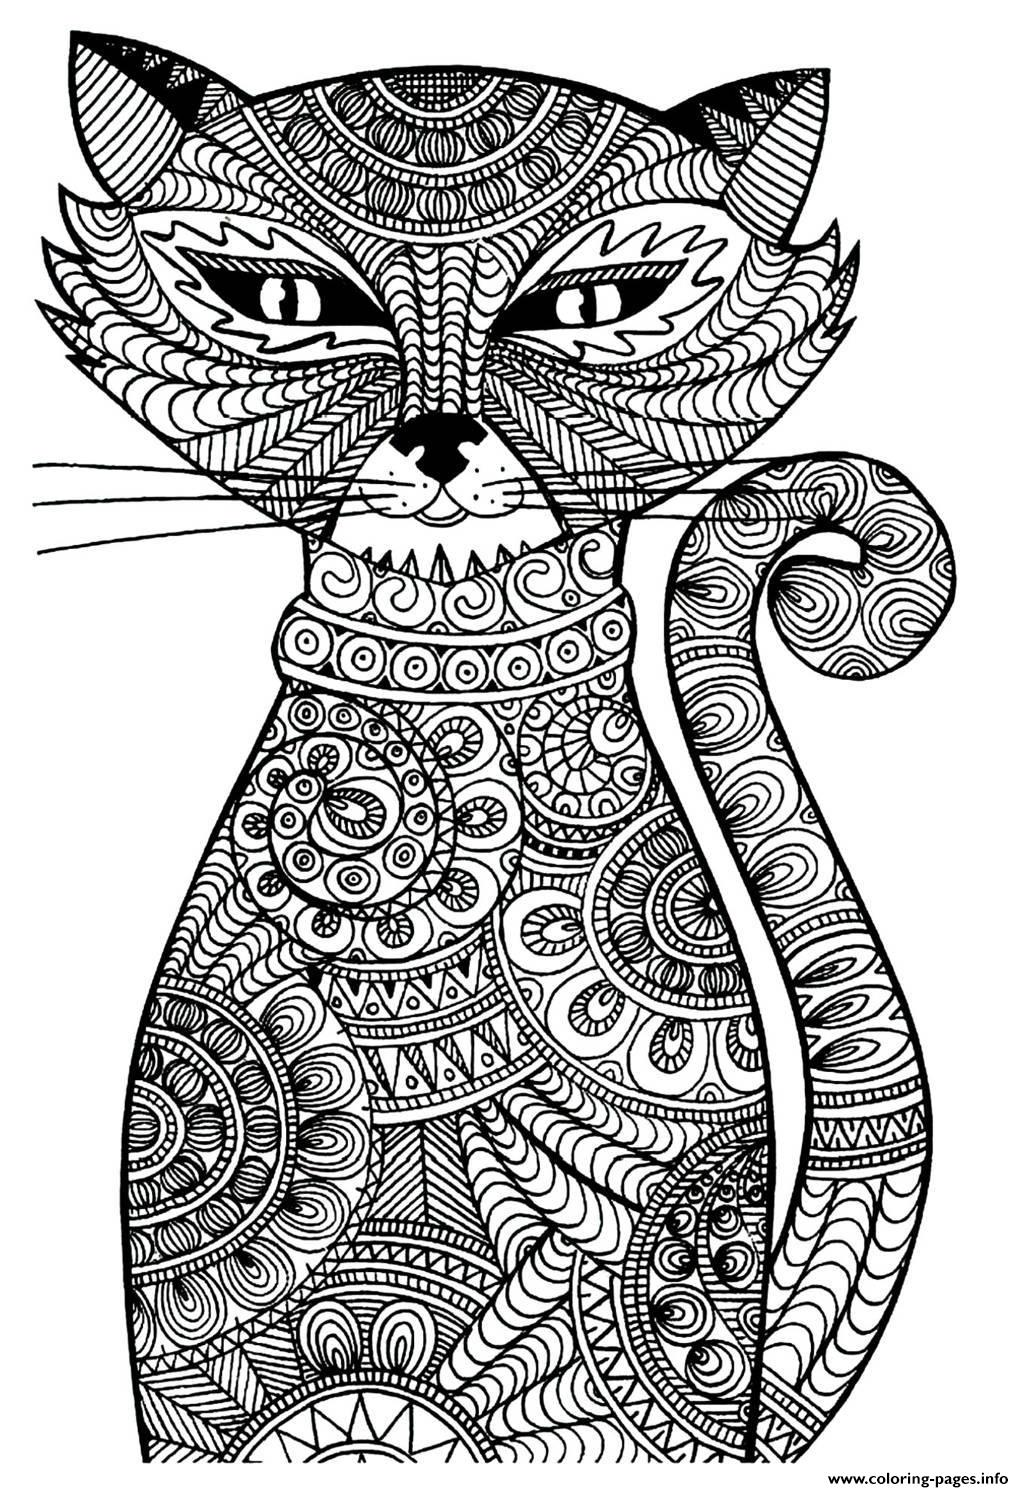 coloring adults pages adult cat coloring pages printable pages adults coloring